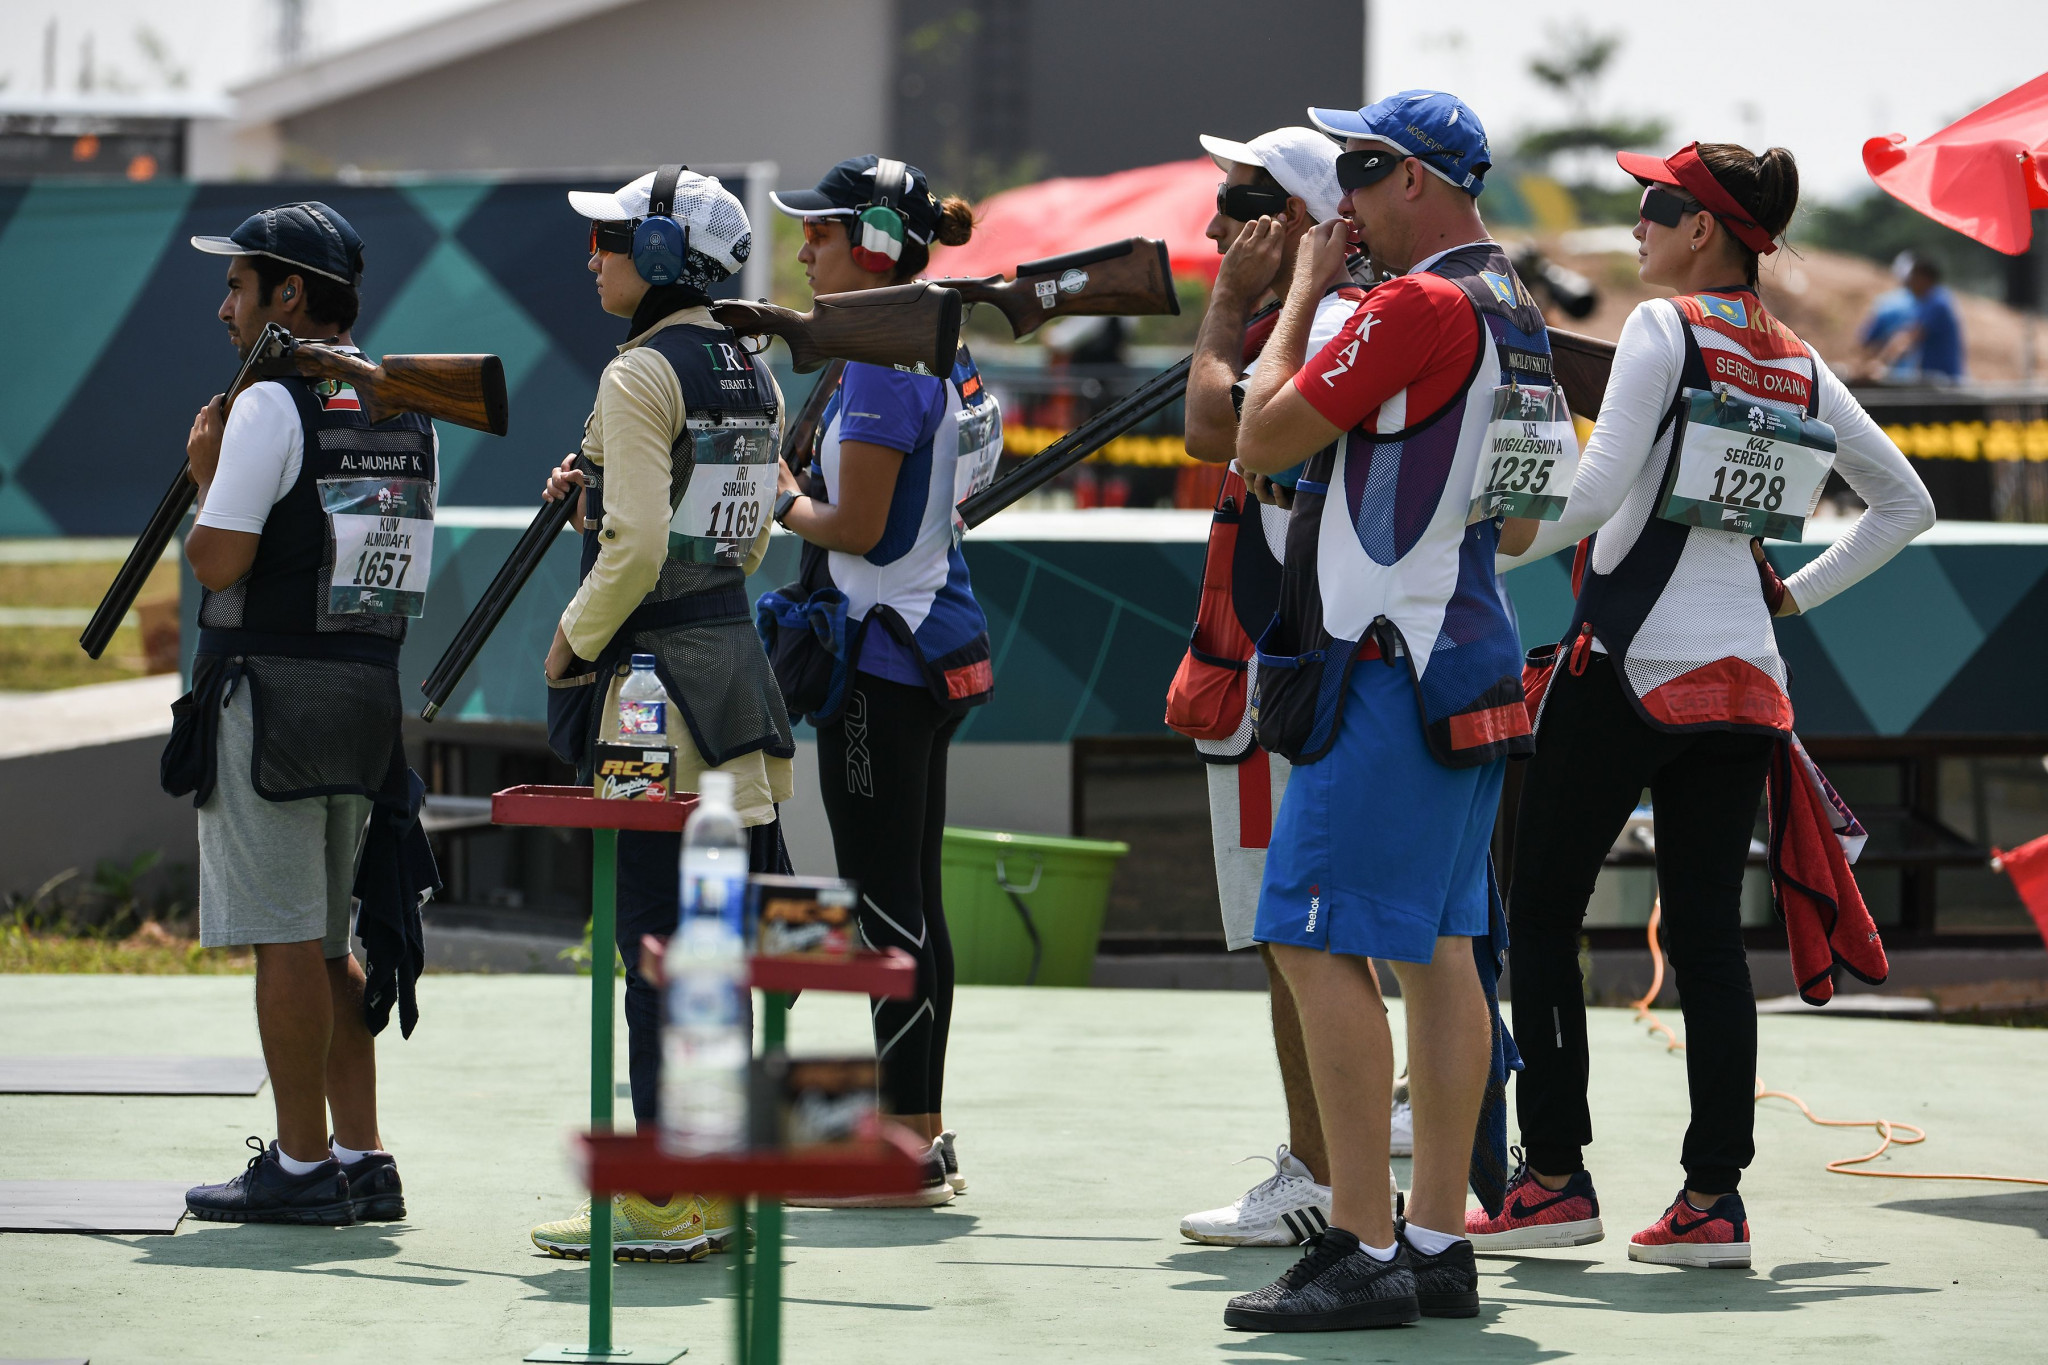 In a statement, the ISSF said the change had been made because the previous format led to a